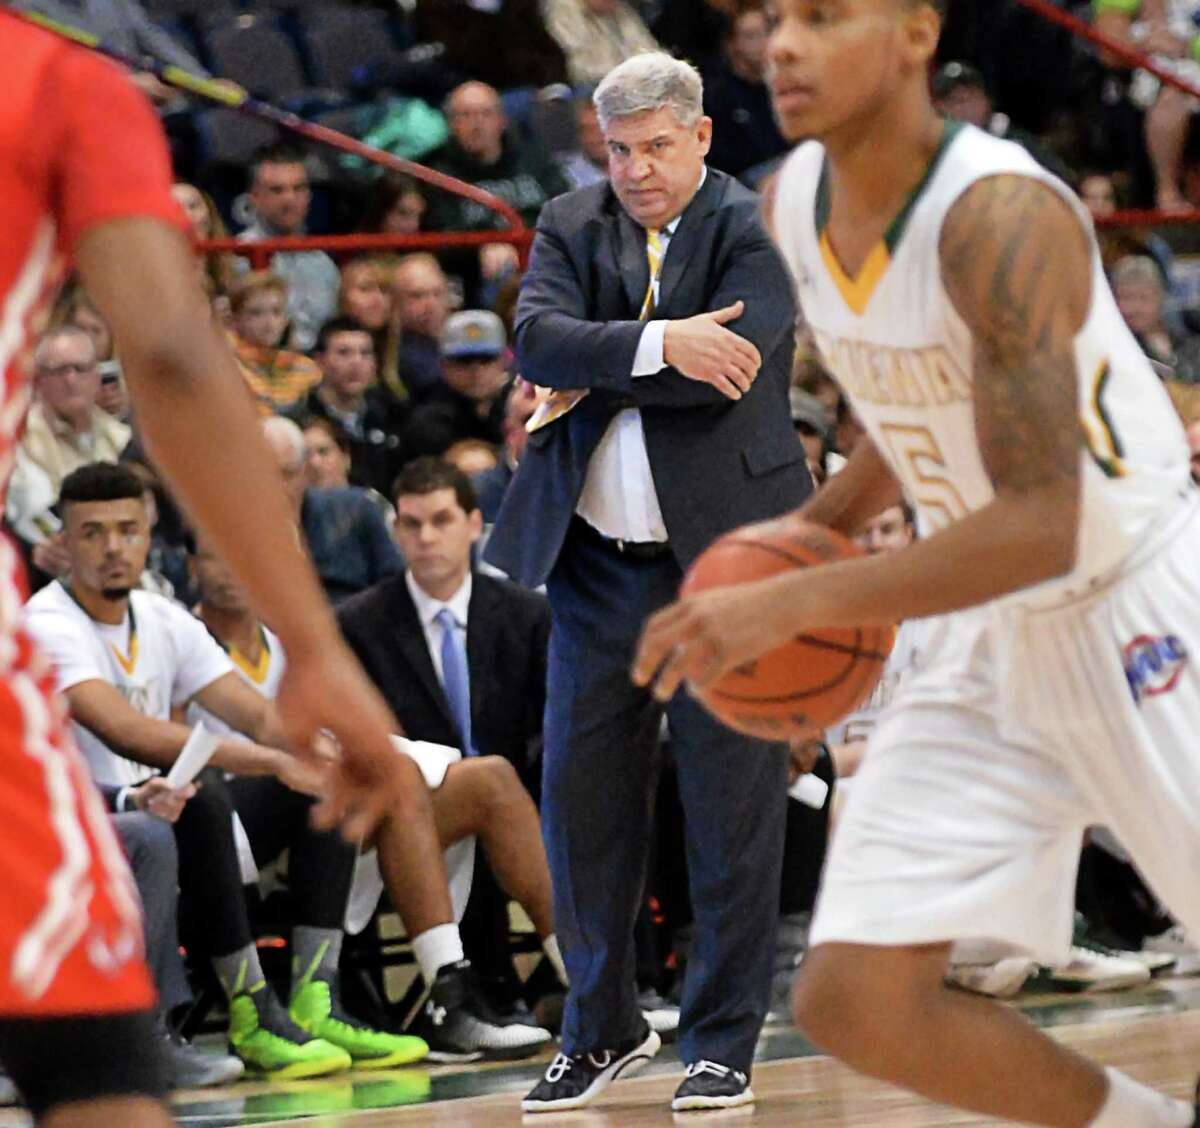 Siena head coach Jimmy Patsos watches from the sidelines during Saturday's game against Marist at the Times Union Center Jan. 30, 2016 in Albany, NY. (John Carl D'Annibale / Times Union)